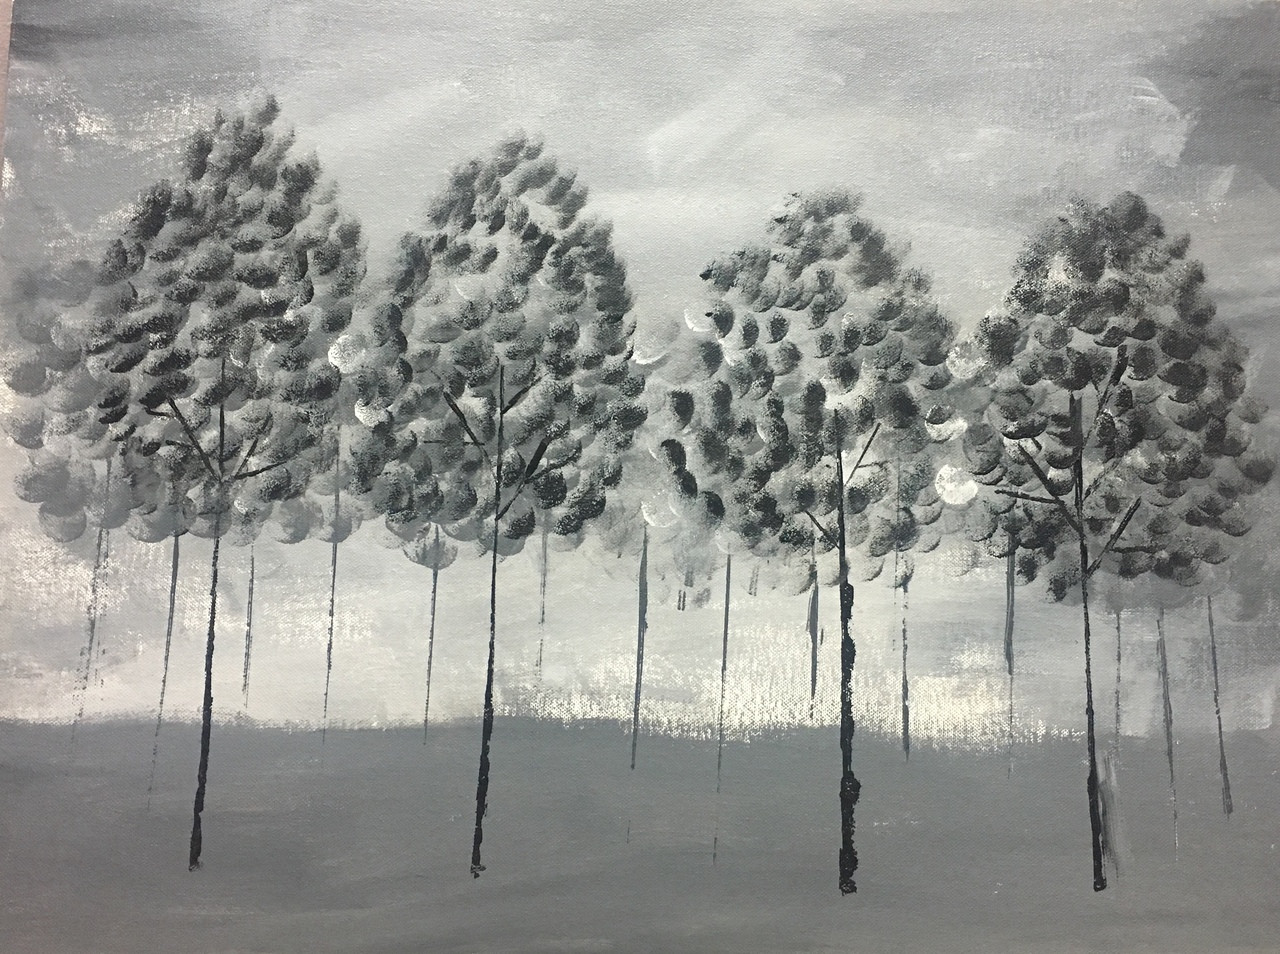 Black and white trees art 3551 25383 handpainted art painting 24in x 18in